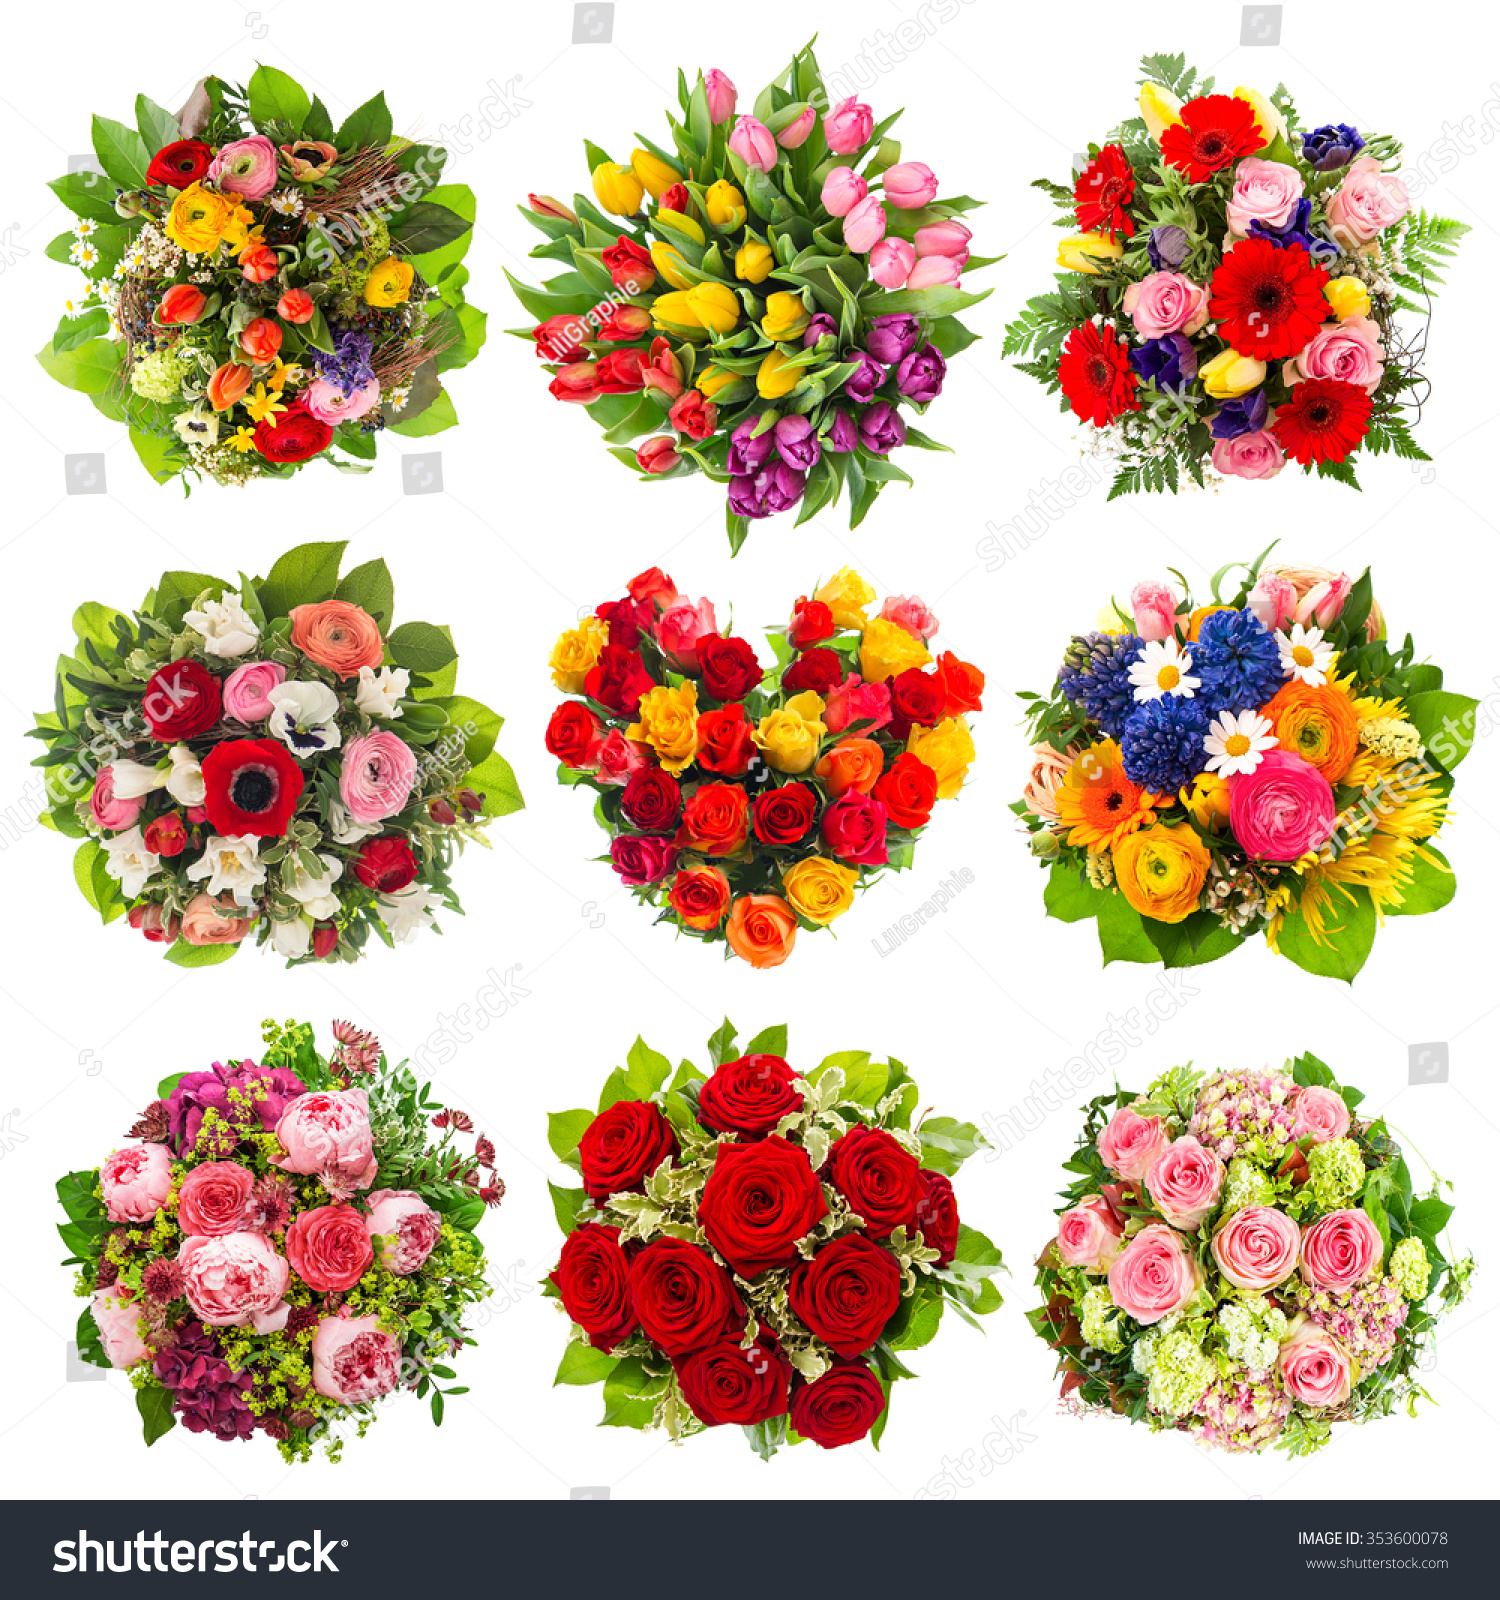 Flowers bouquet birthday wedding mothers day stock photo edit now flowers bouquet for birthday wedding mothers day easter anniversary holidays izmirmasajfo